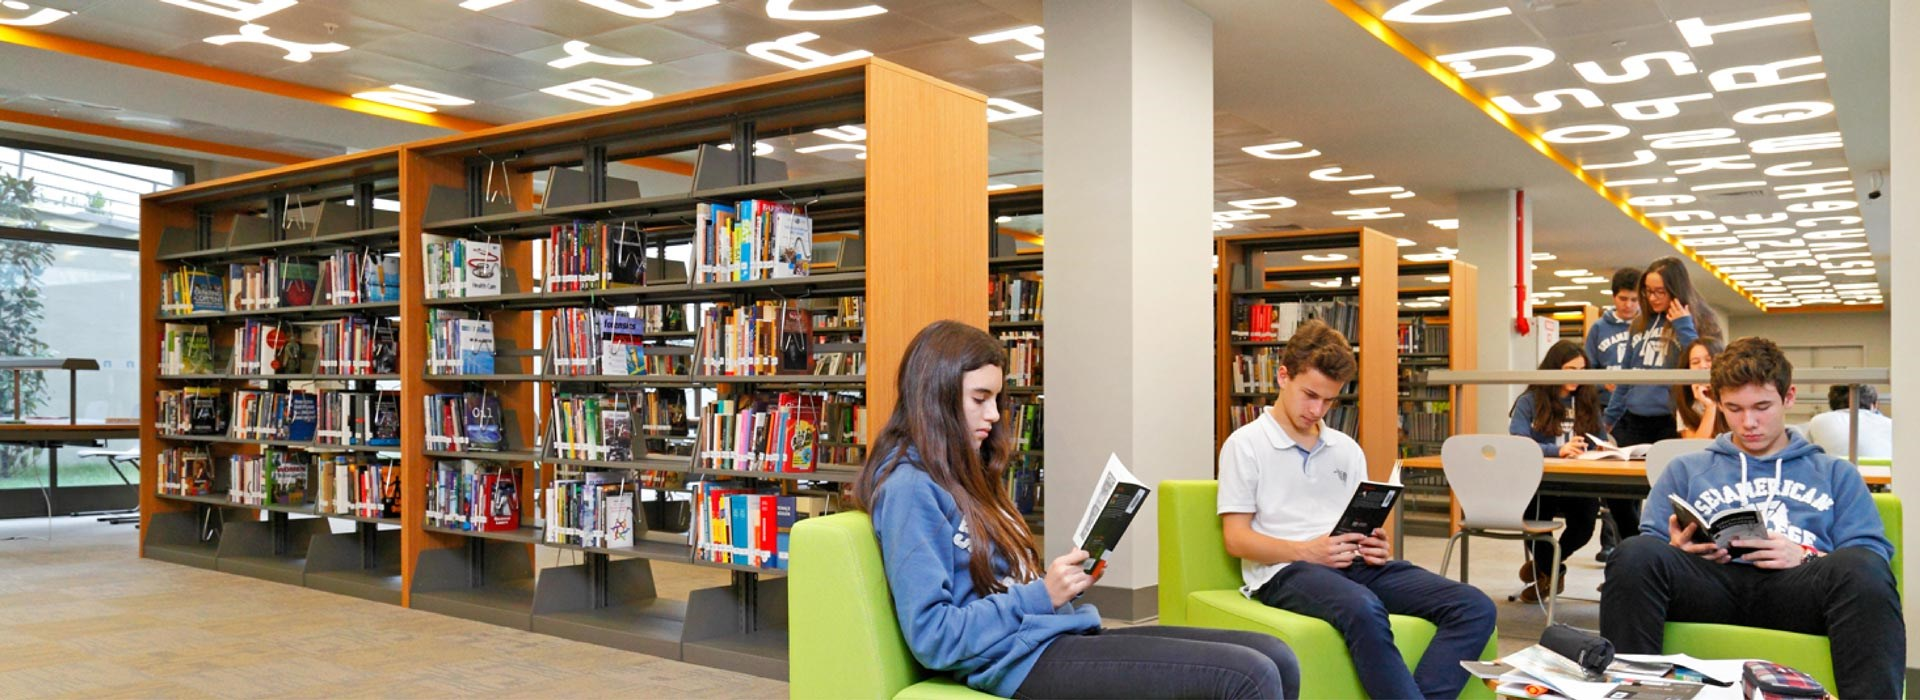 Please click here to reach the online library catalog from campus